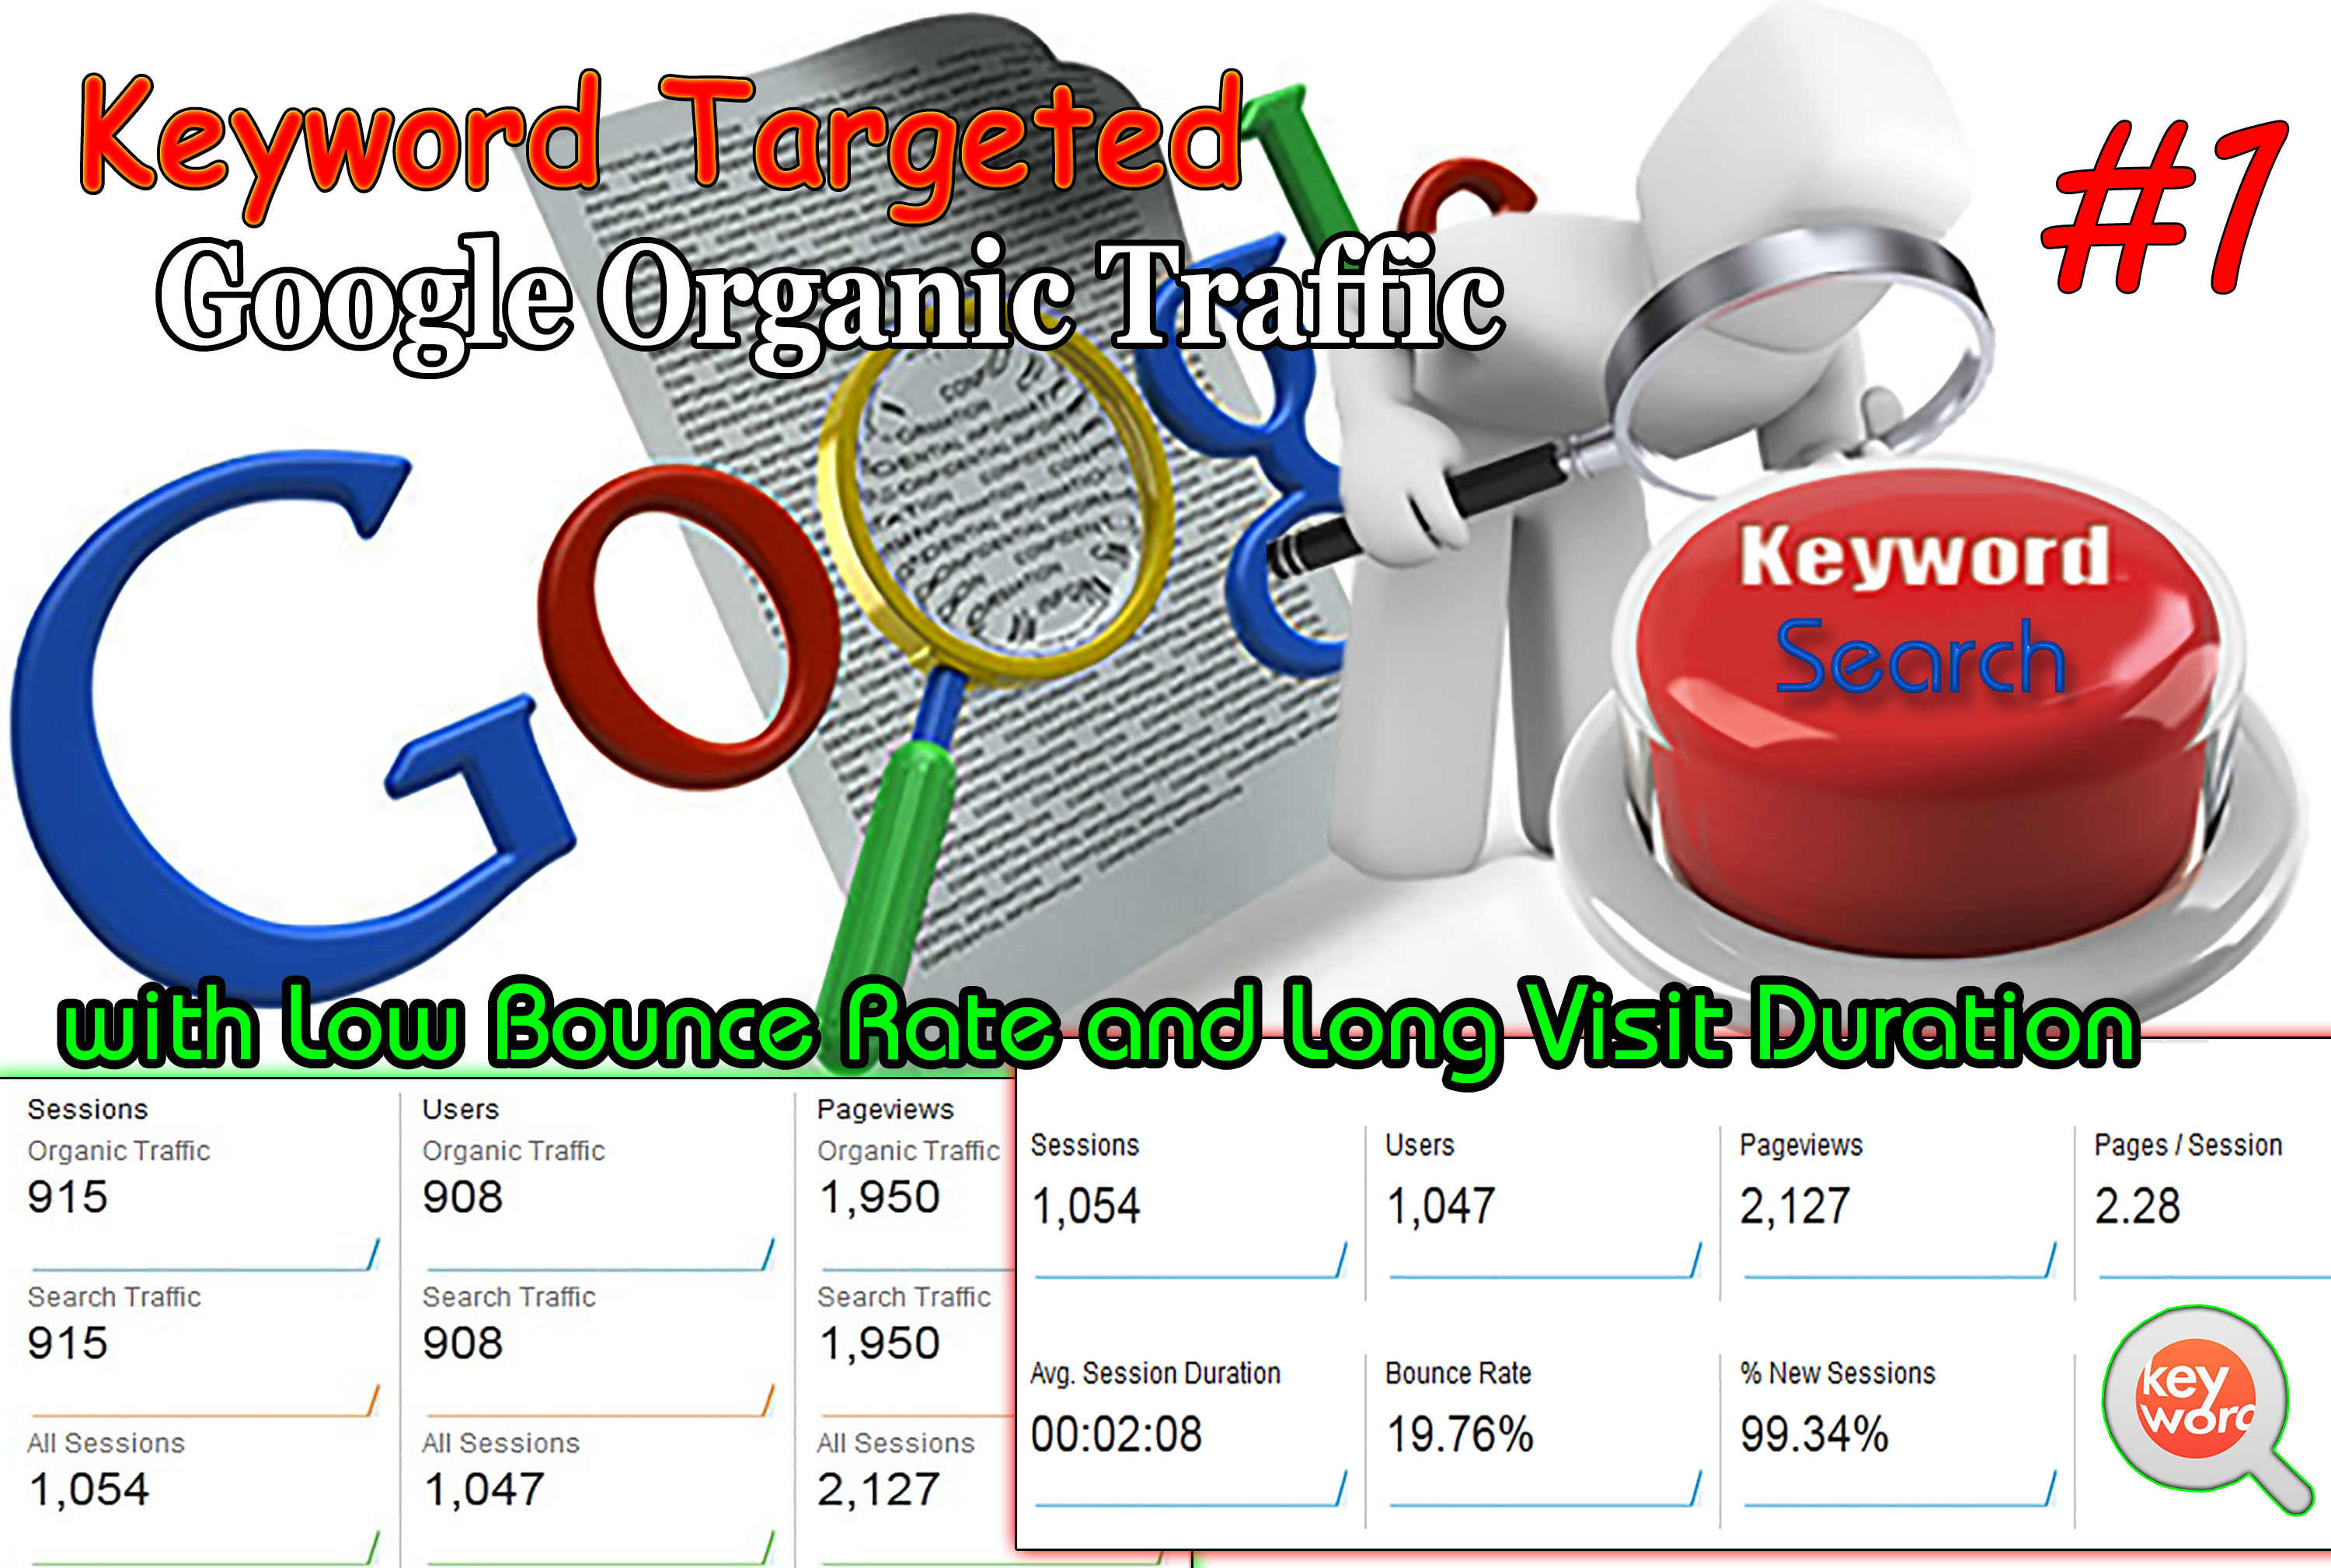 drive keyword targeted organic traffic with low bounce rate and long visit duration